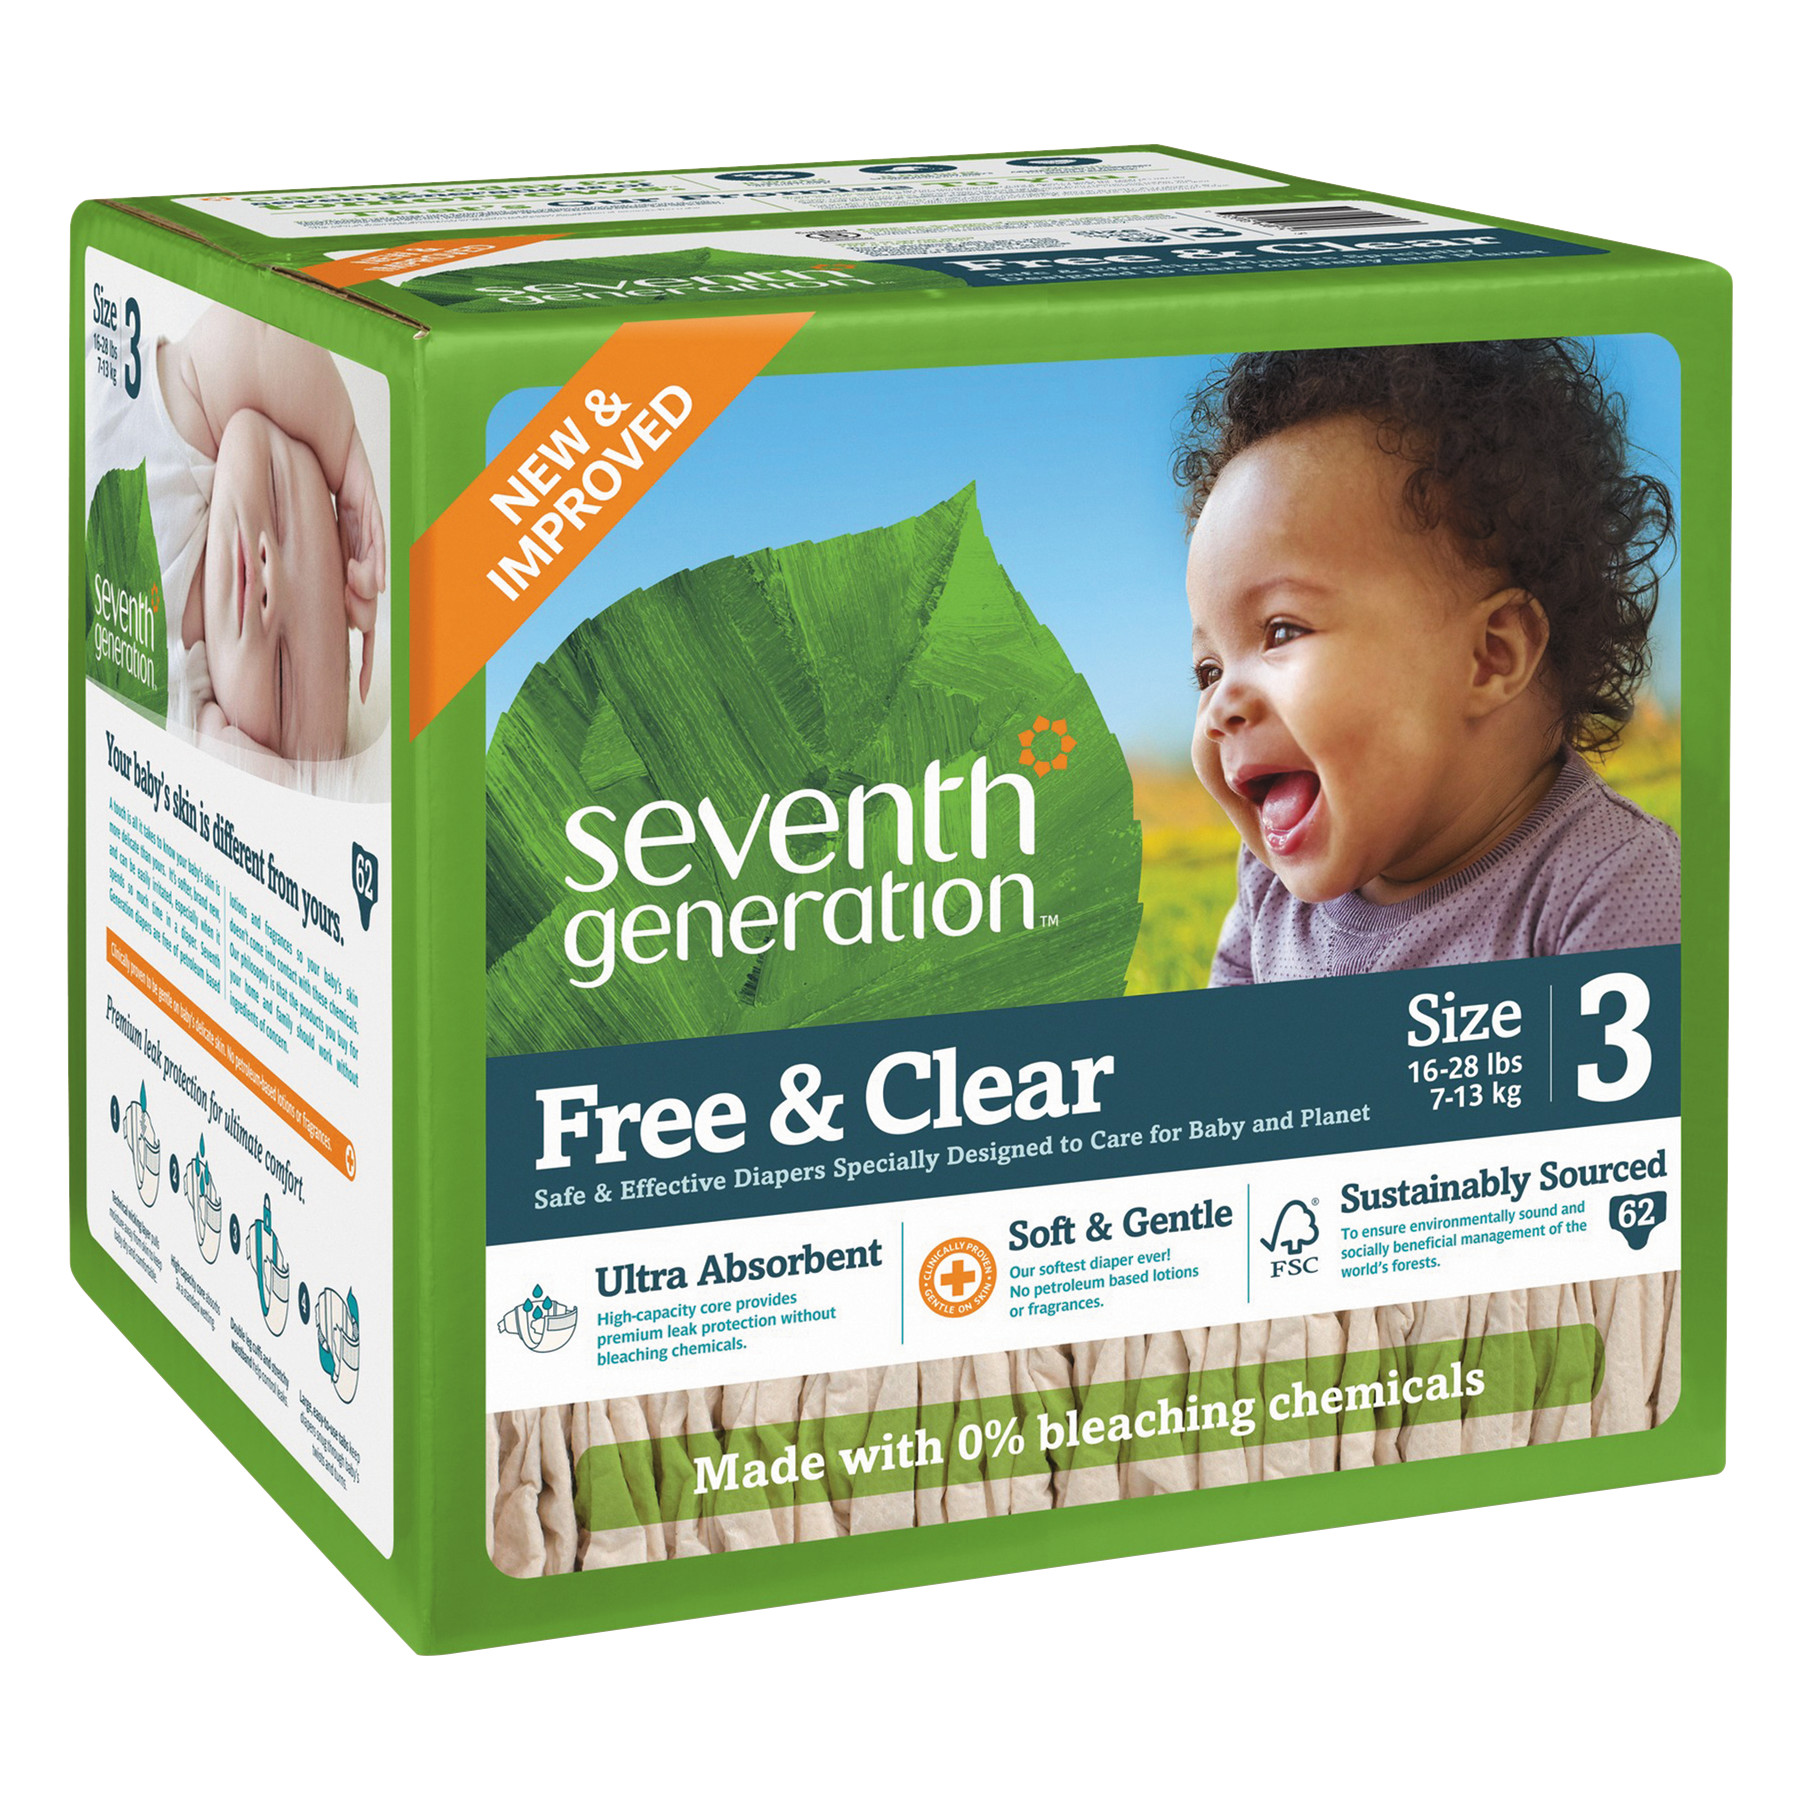 Seventh Generation Free & Clear Diapers, Size 3, 62 Diapers ...